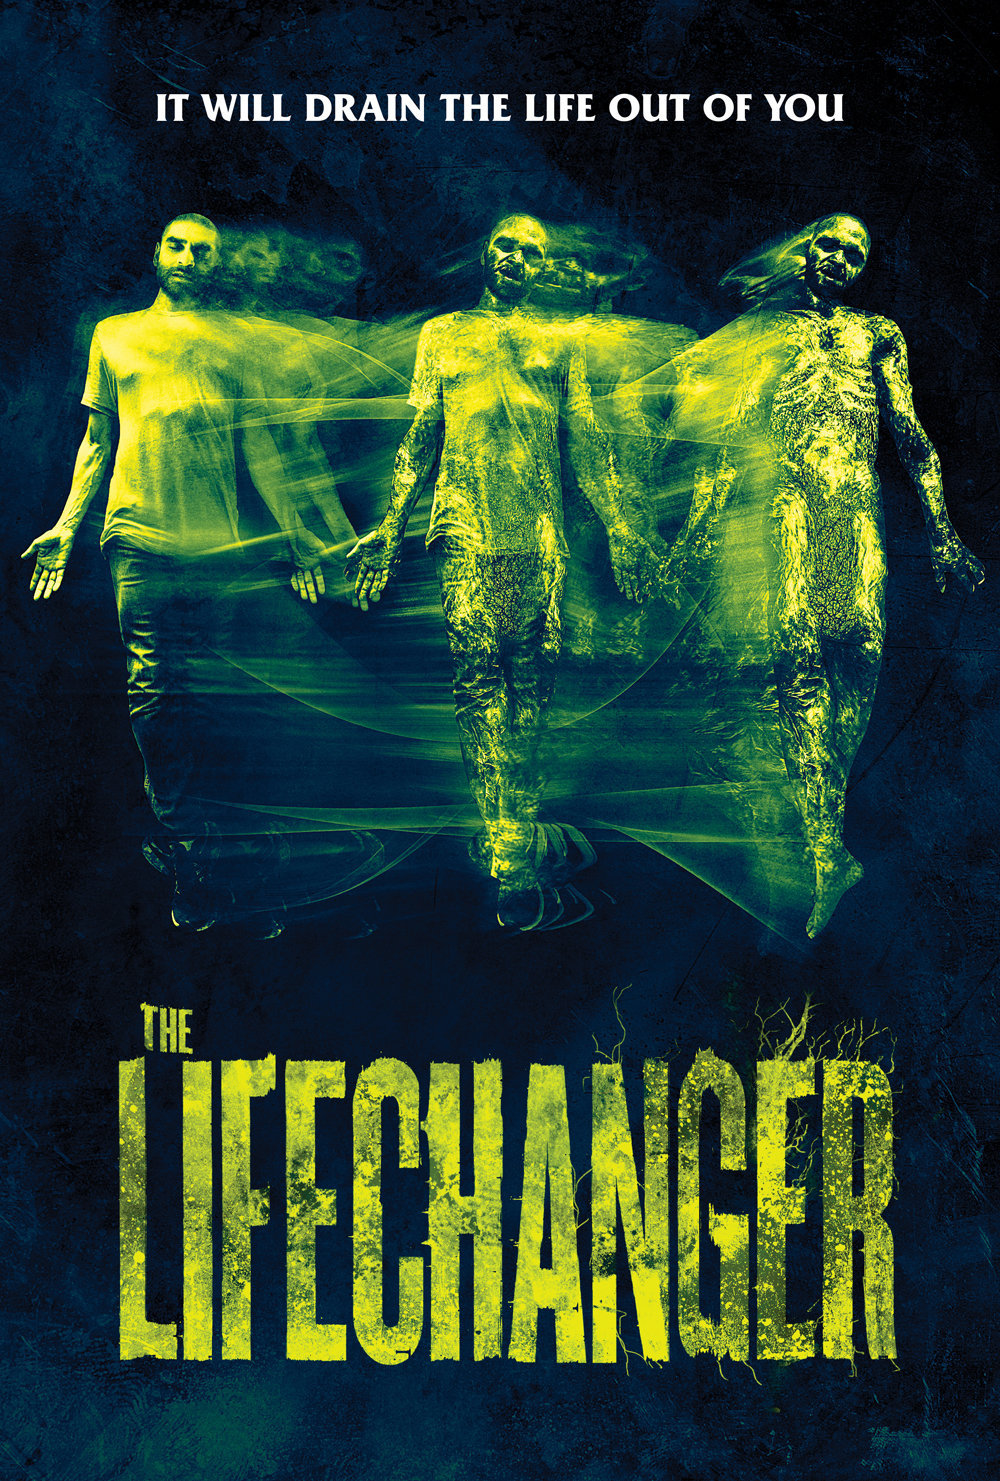 Lifechanger Poster